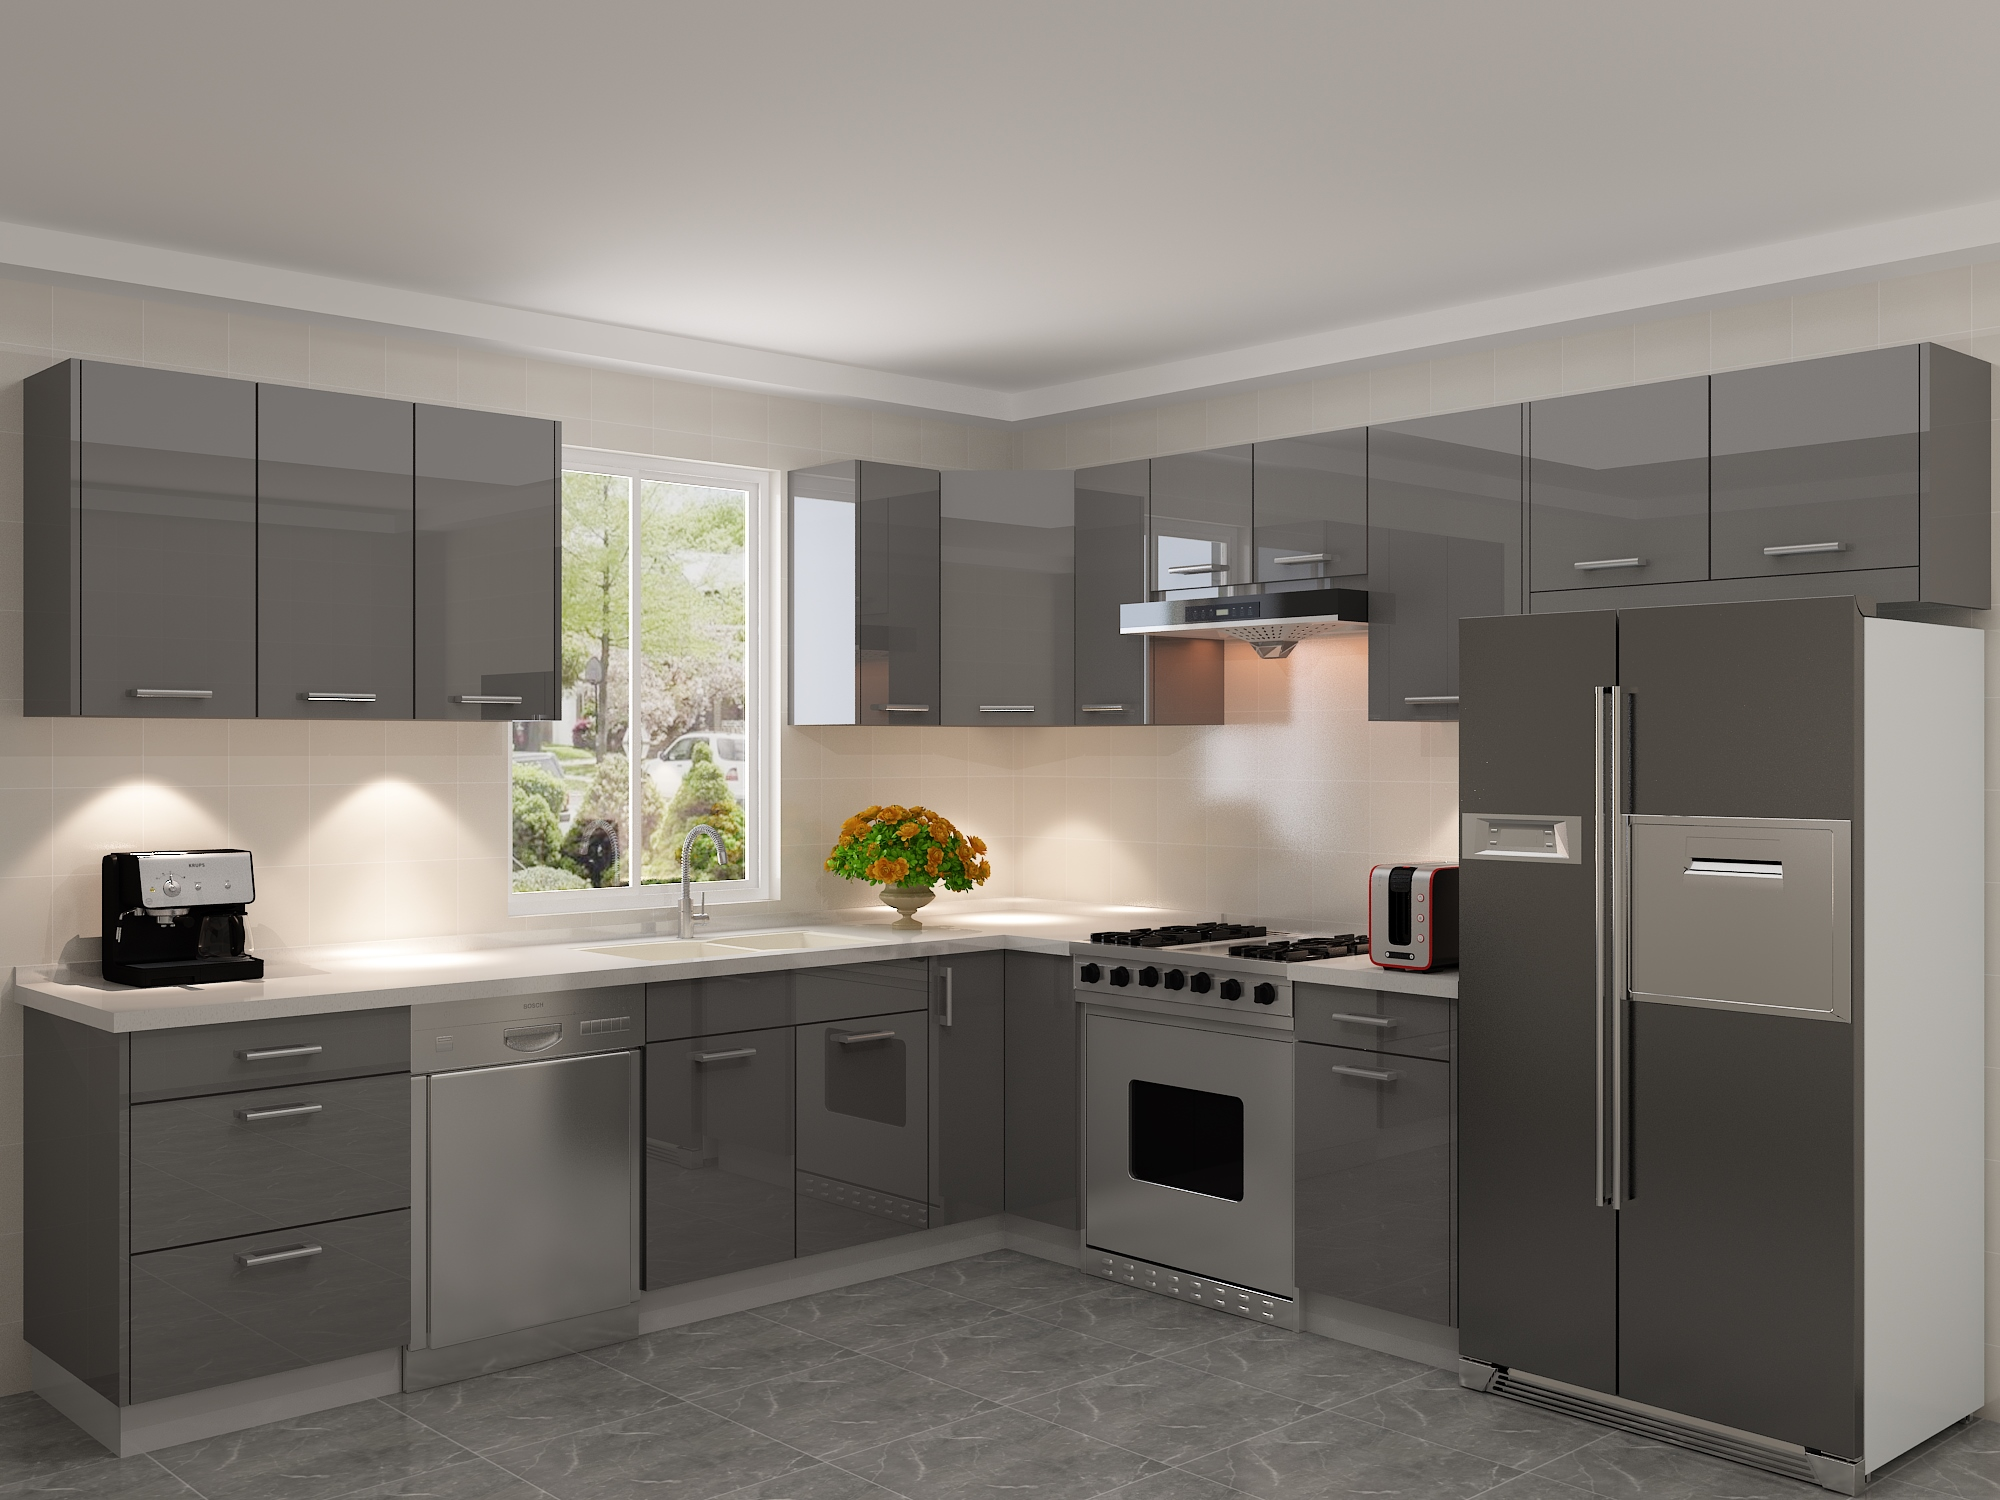 Pctc Cabinetry Kitchen Cabinet Wholesaler In Anaheim California